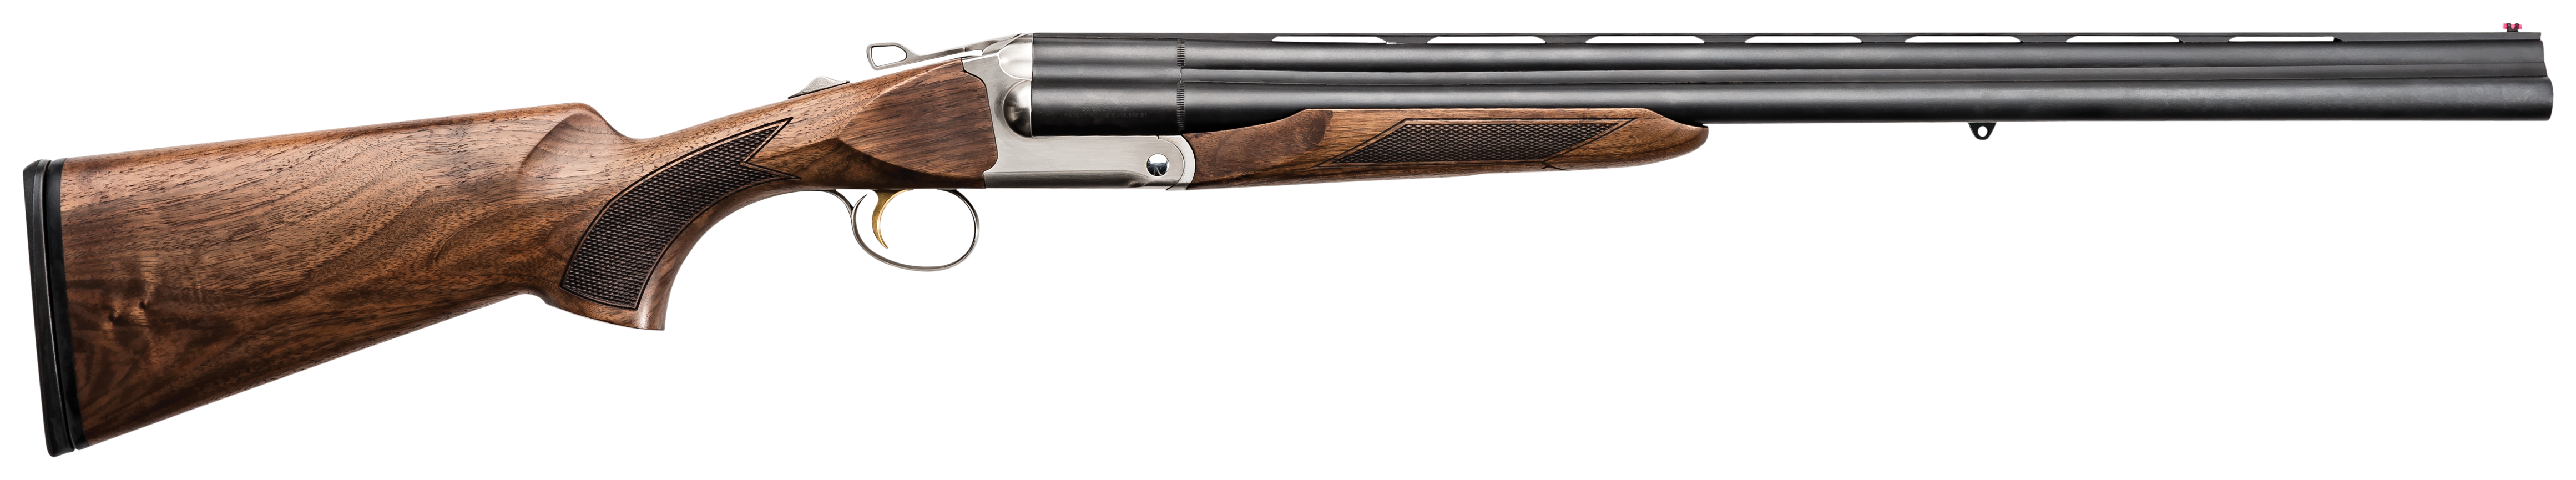 Charles Daly Chiappa 930078 Triple Crown Break Open 12 Gauge 28